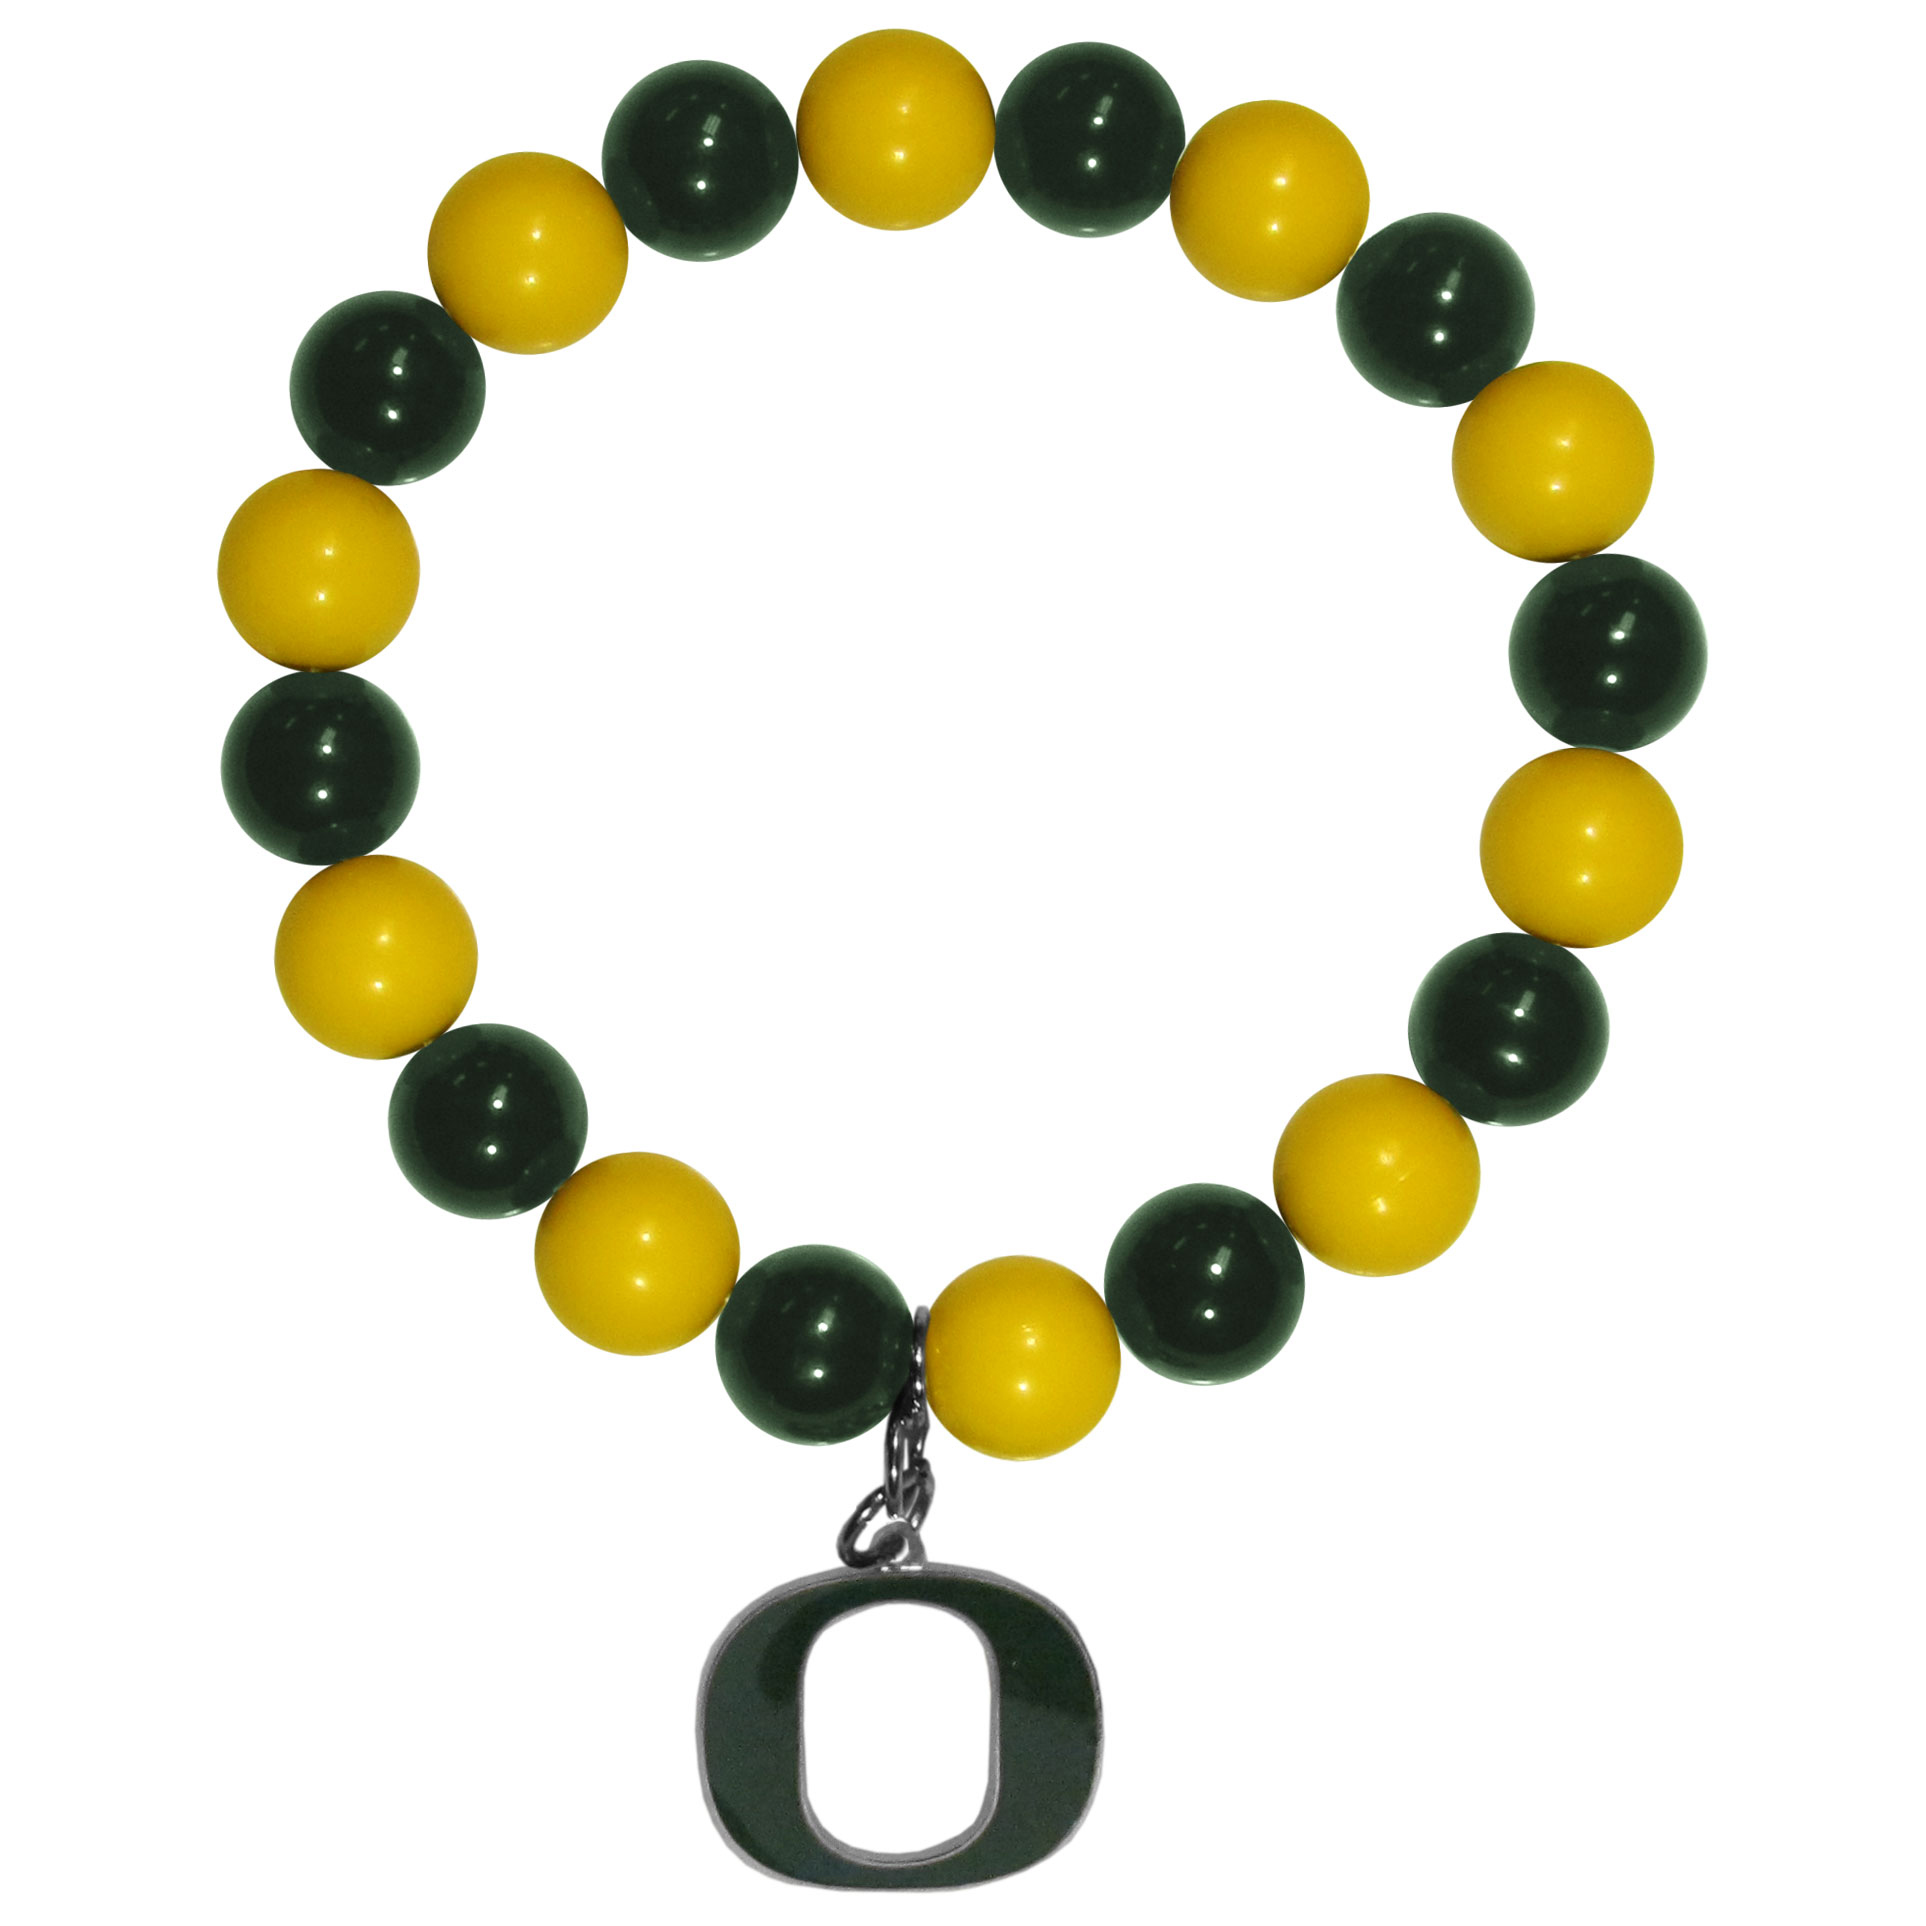 Oregon Ducks Fan Bead Bracelet - Flash your Oregon Ducks spirit with this bright stretch bracelet. This new bracelet features multicolored team beads on stretch cord with a nickel-free enameled chrome team charm. This bracelet adds the perfect pop of color to your game day accessories.